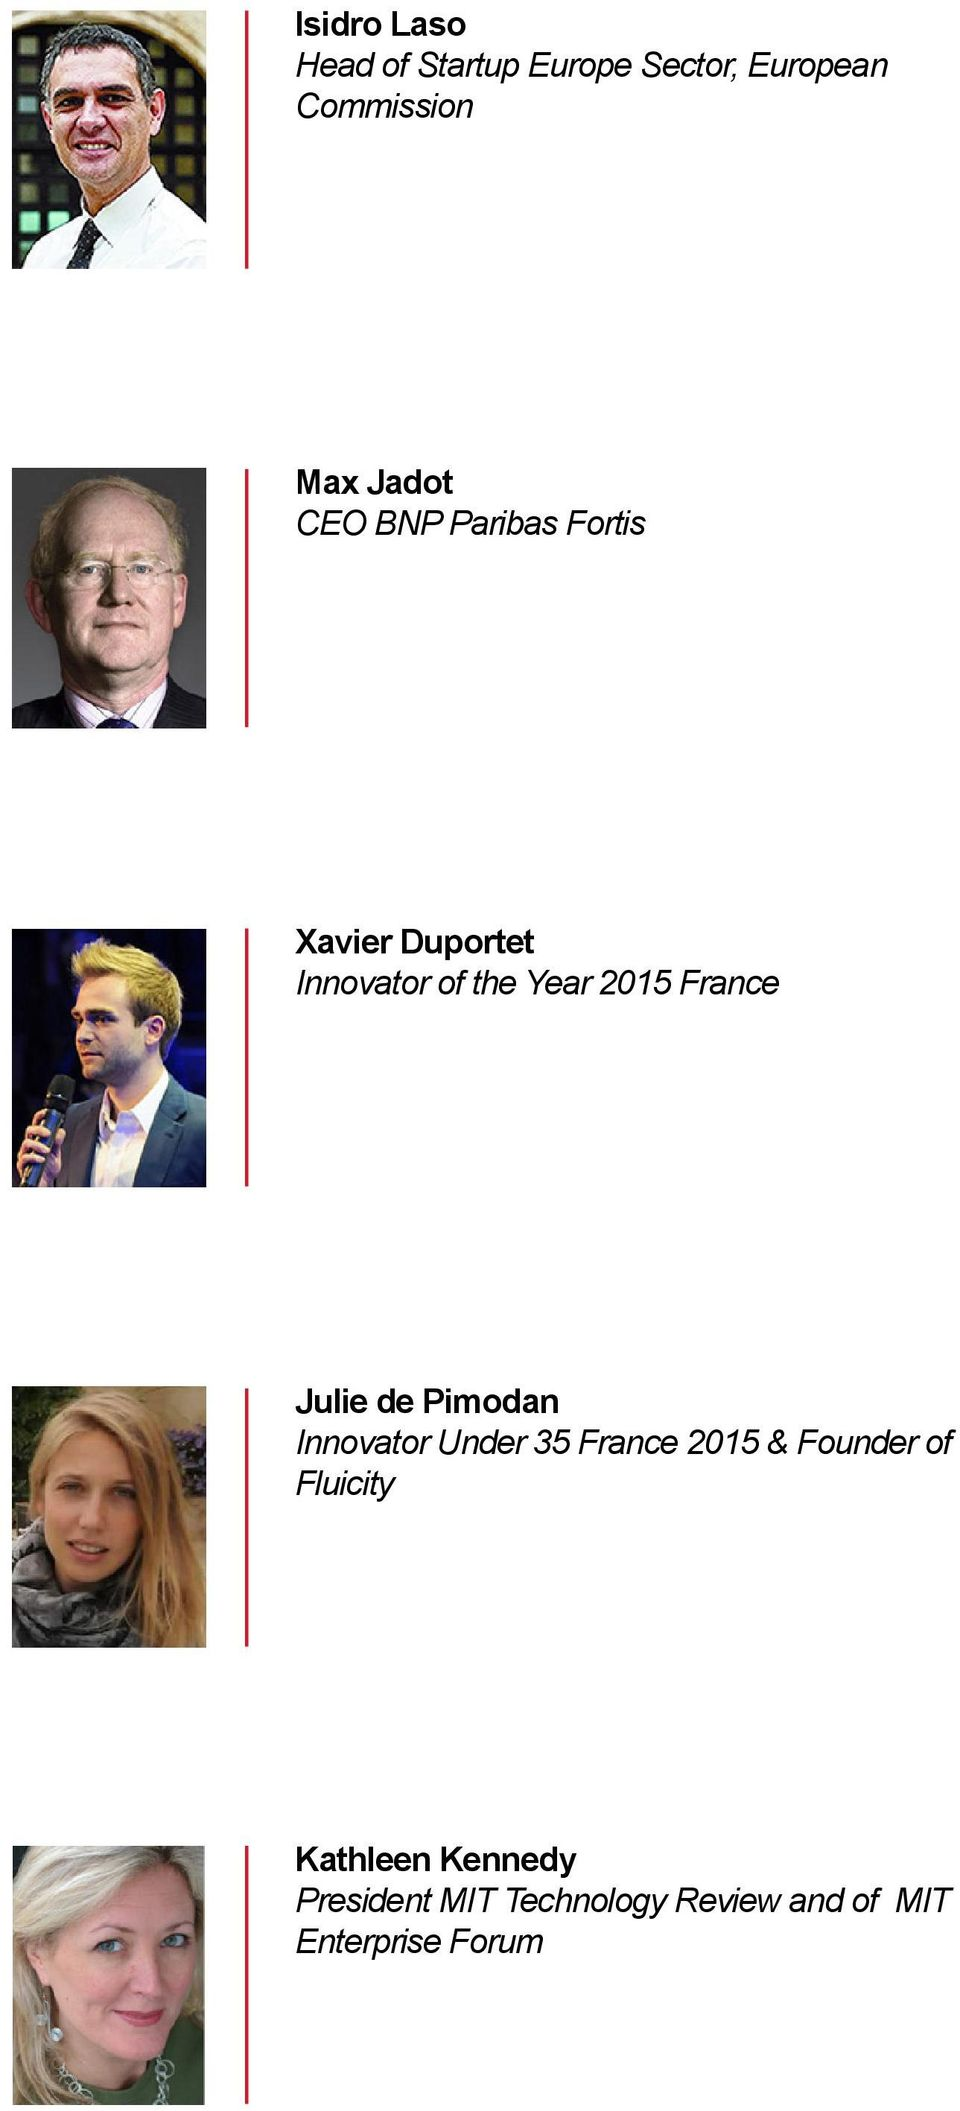 Julie de Pimodan Innovator Under 35 France 2015 & Founder of Fluicity